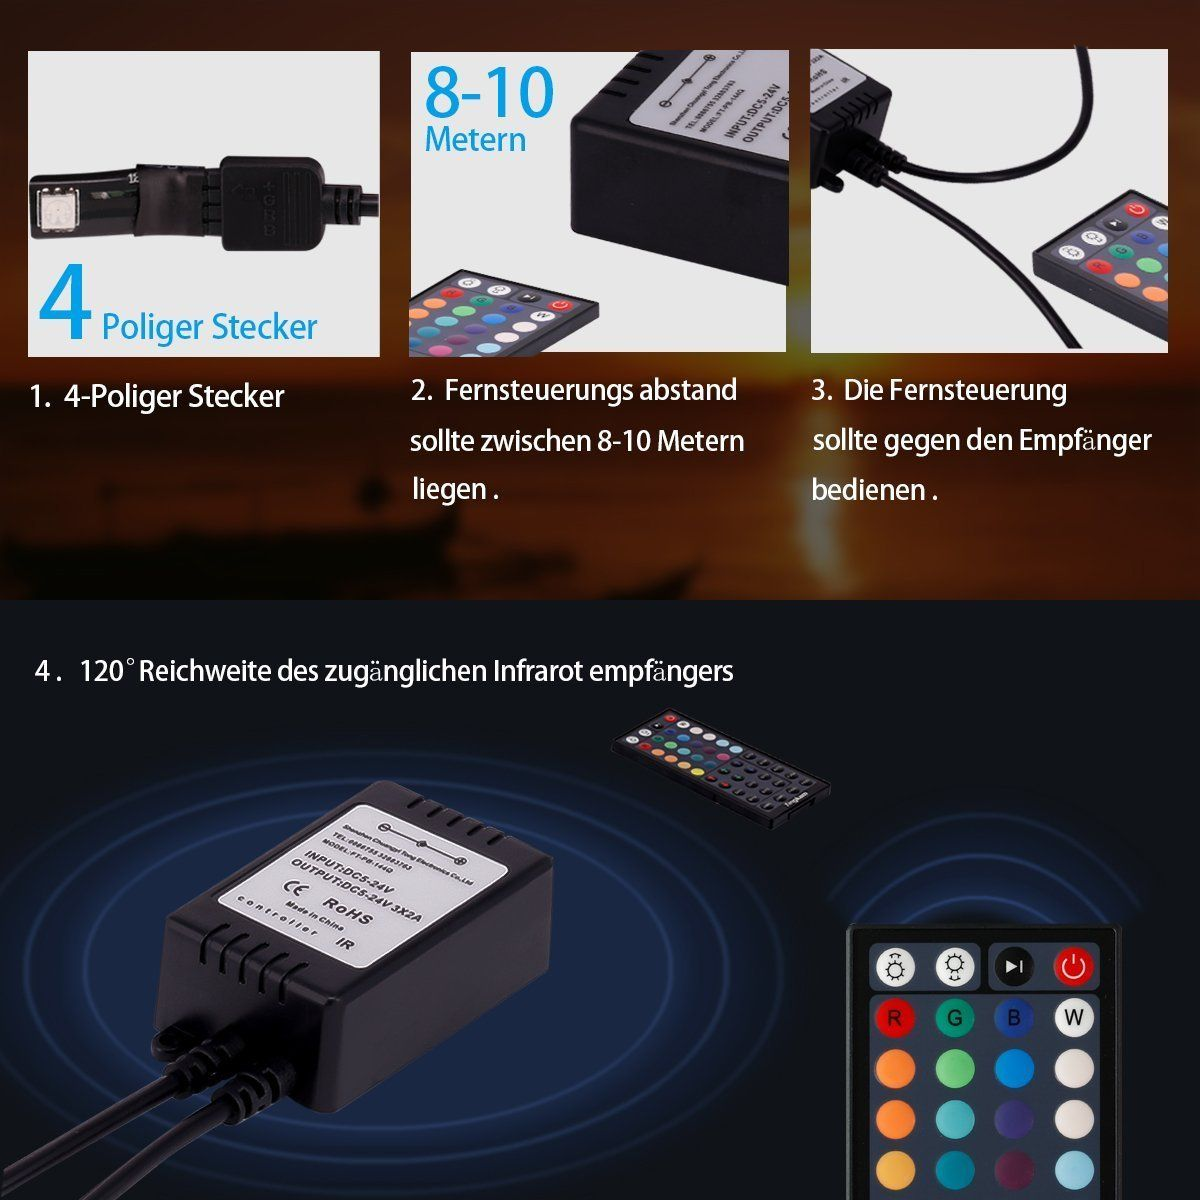 10m Tingkam Led Strip Lights Kit 32.8 Ft 300leds Waterproof 5050 SMD RGB LED Flexible Lights with 44key ir Controller and Power Supply for Home,Kitchen,Trucks,Sitting Room and Bedroom Decoration.